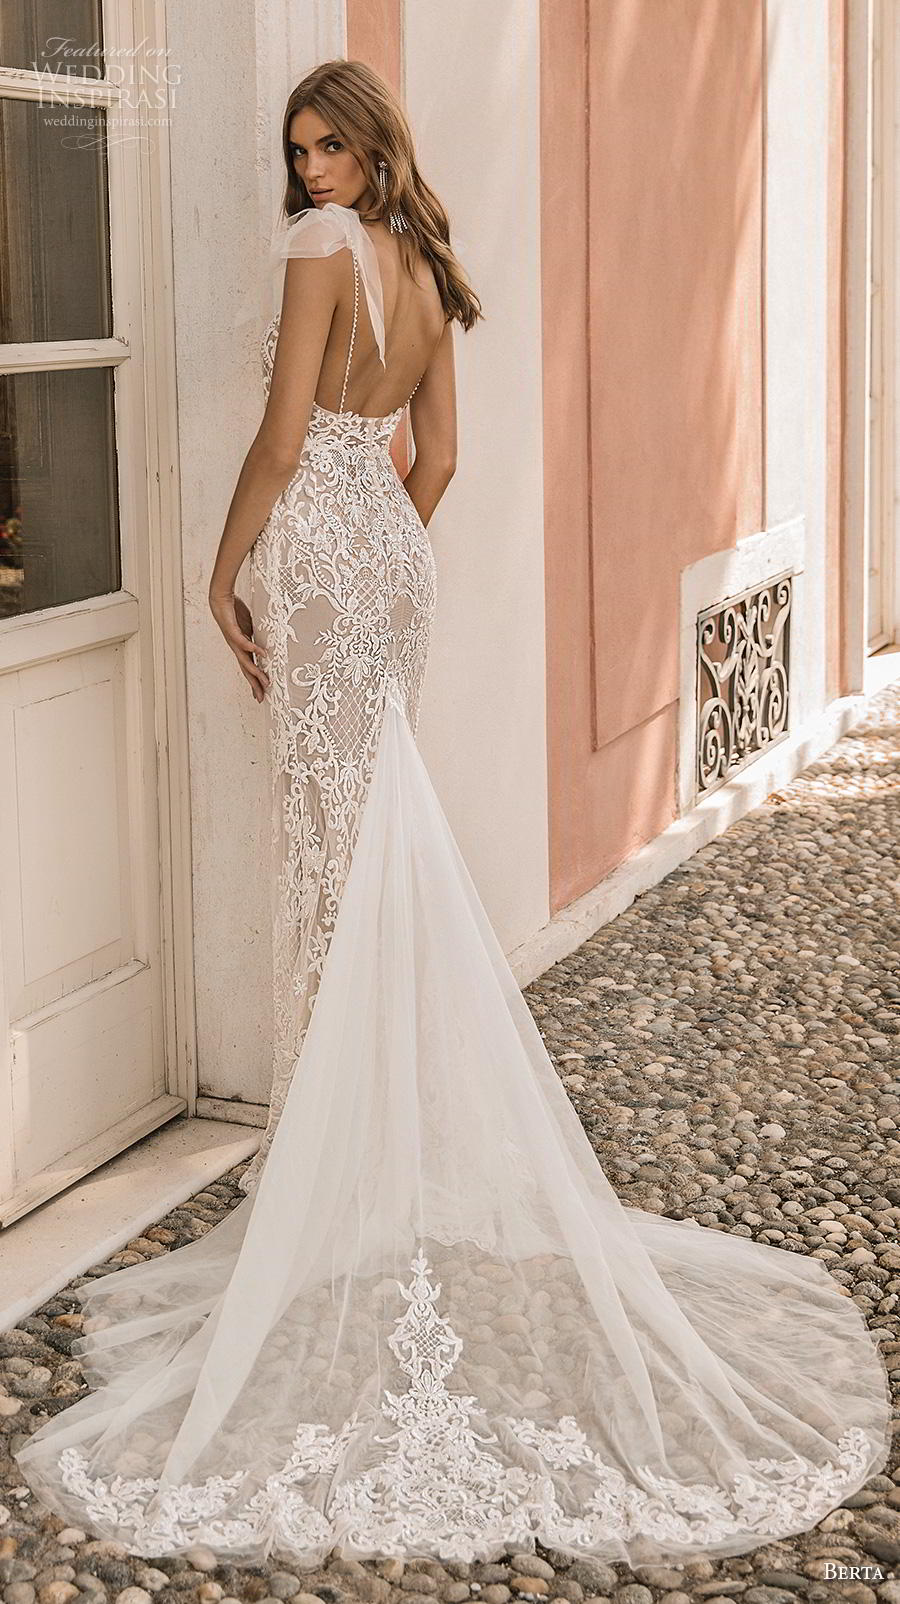 berta 2019 privee bridal thin strap diamond neck full embellishment elegant glamorous sheath wedding dress backless chapel train (5) bv